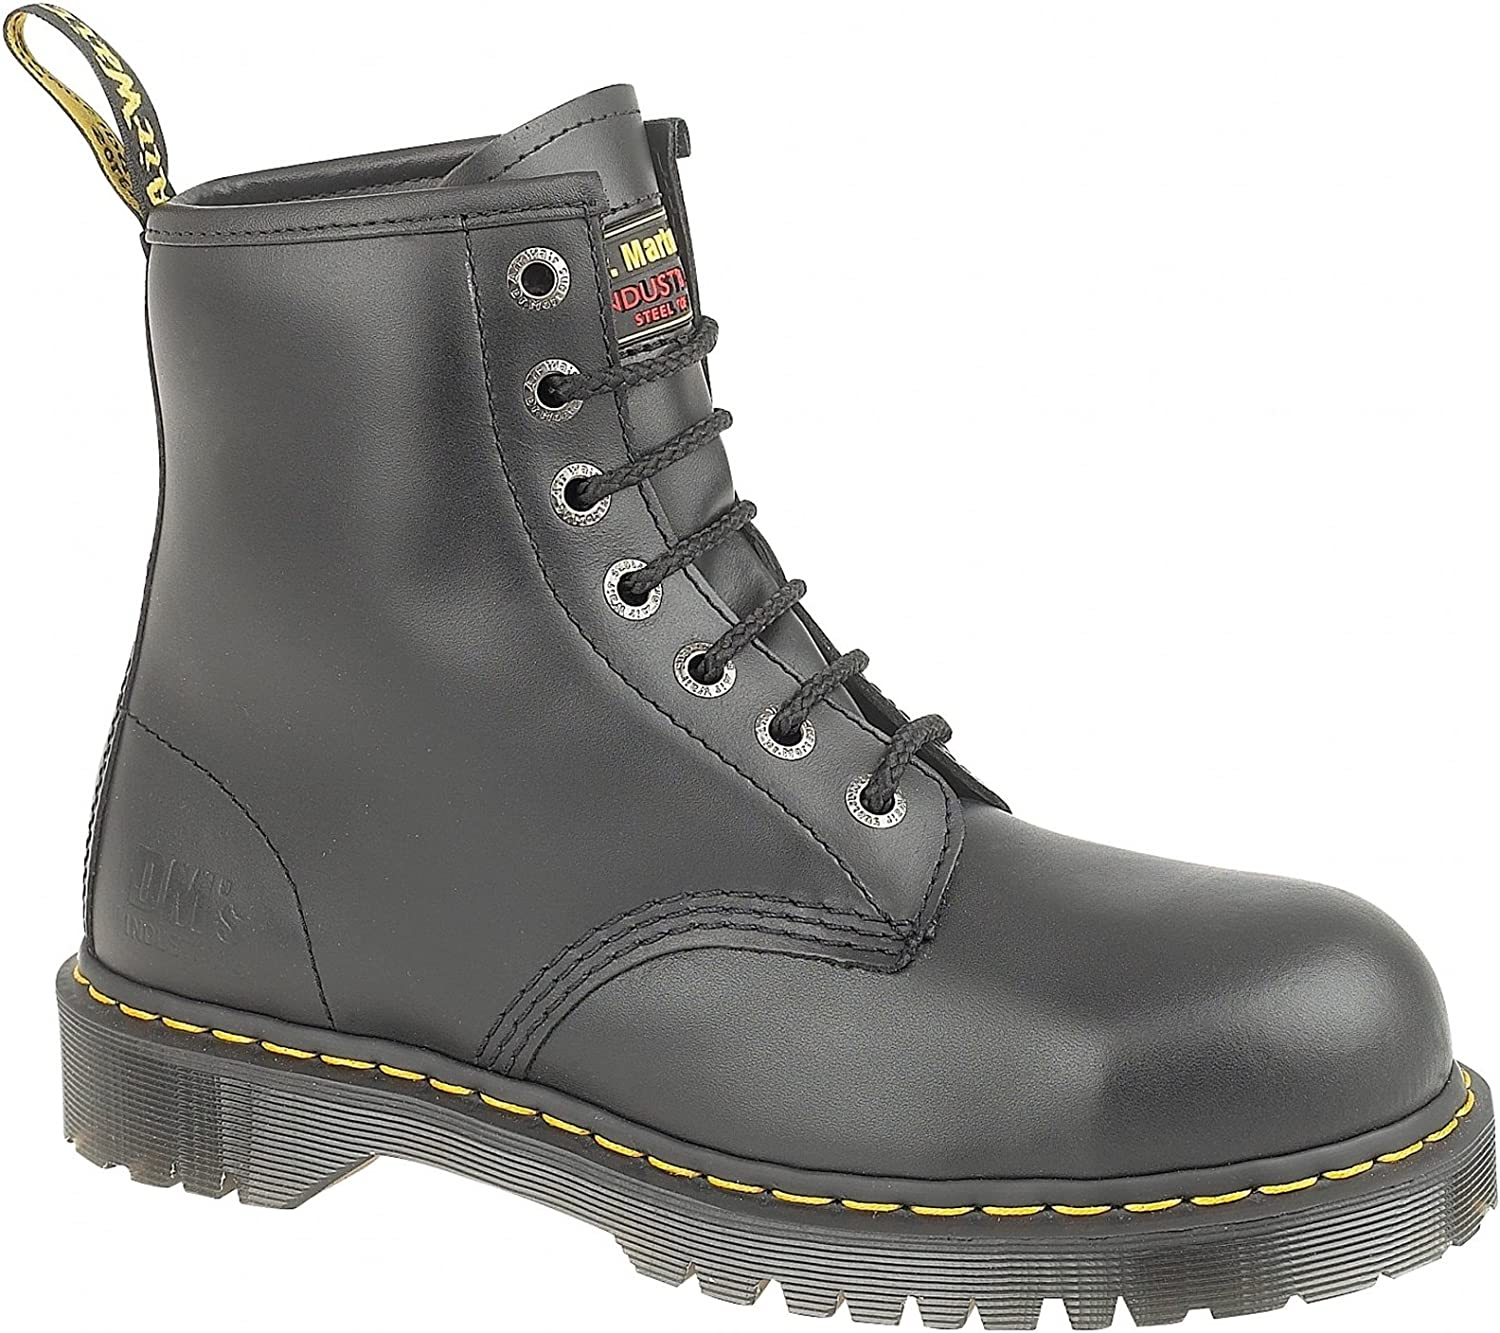 Dr Martens FS64 Lace - Up Boot   herr stövlar   stövlar Safety